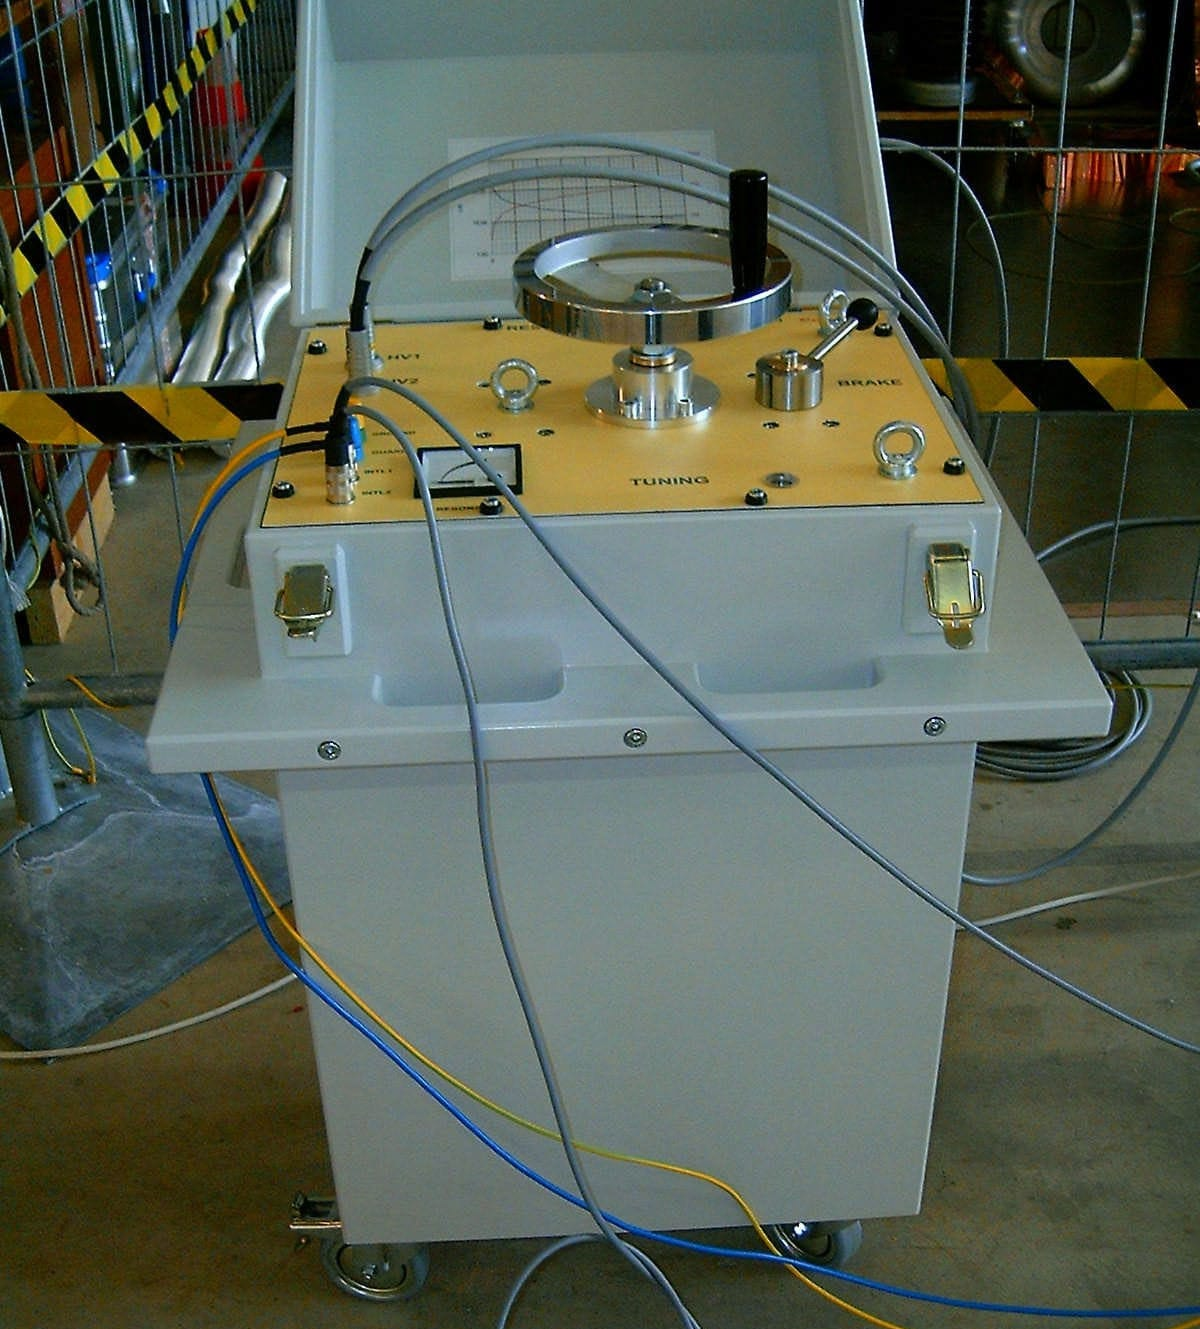 Ac Inductor Iron Core Hv Power Factor Correction Ft 12ri In Electrical Wiring Installation Technology